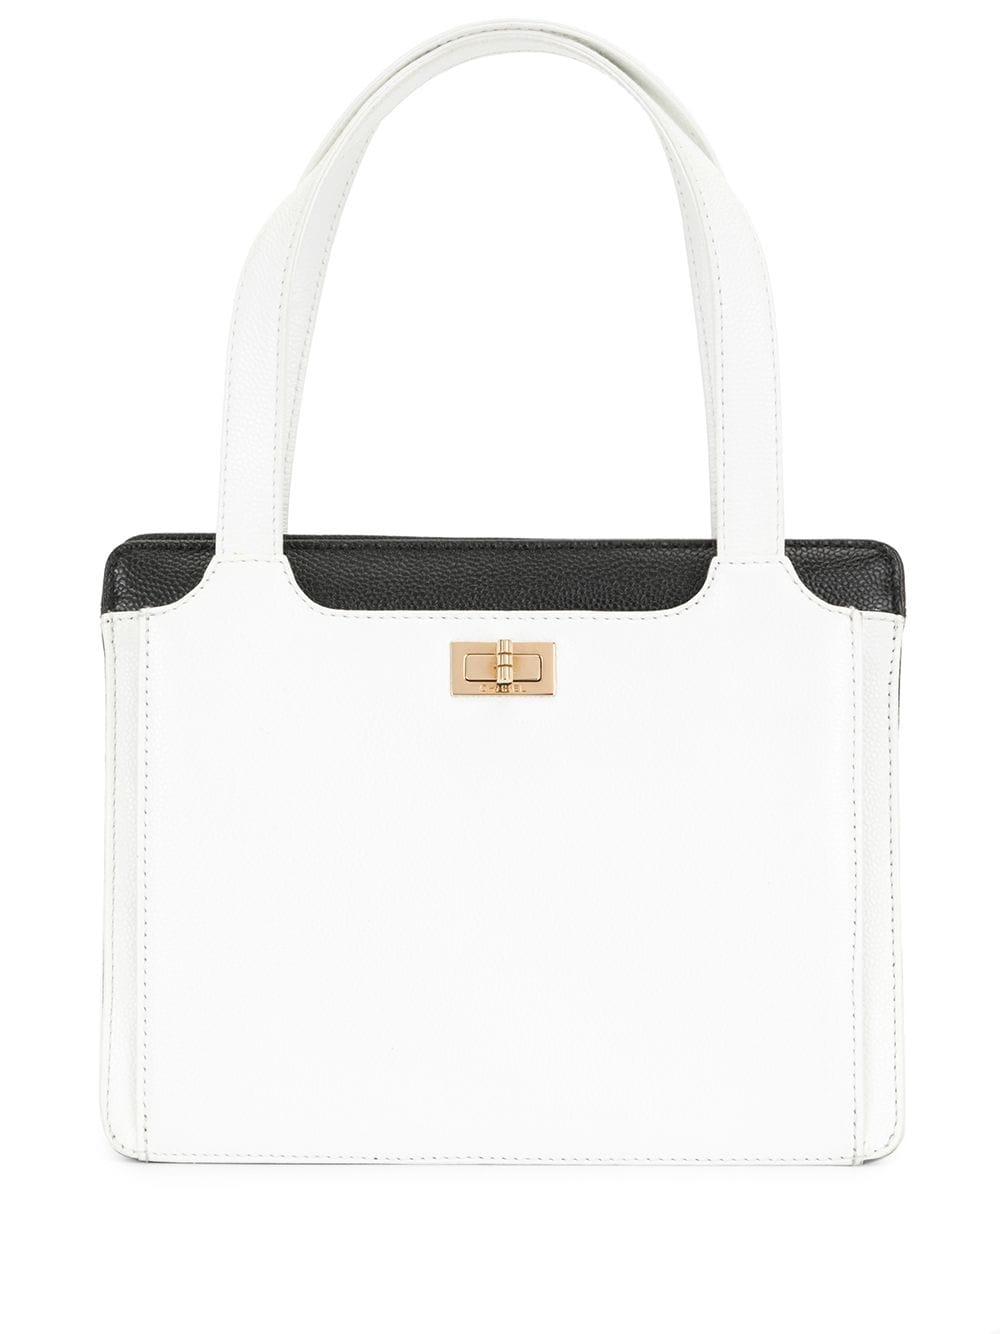 Chanel Pre-Owned 1998 2.55 Line tote bag - White